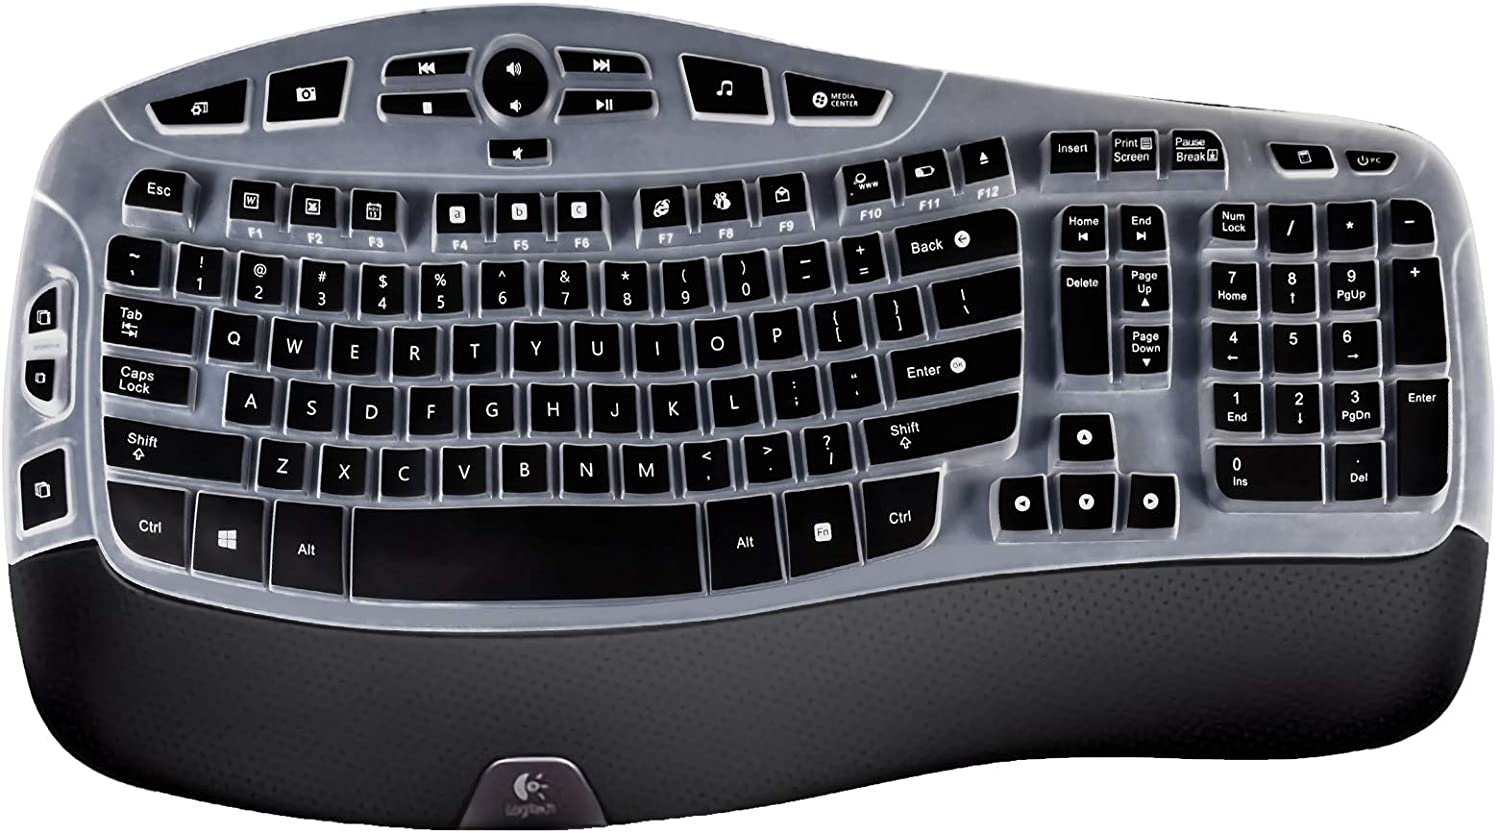 Lapogy Keyboard Cover Compatible with Logitech K350 MK550 MK570 Wireless Wave Keyboard Accessories.MK550 Keyboard Ultra Thin Silicone Protector Skin Black.